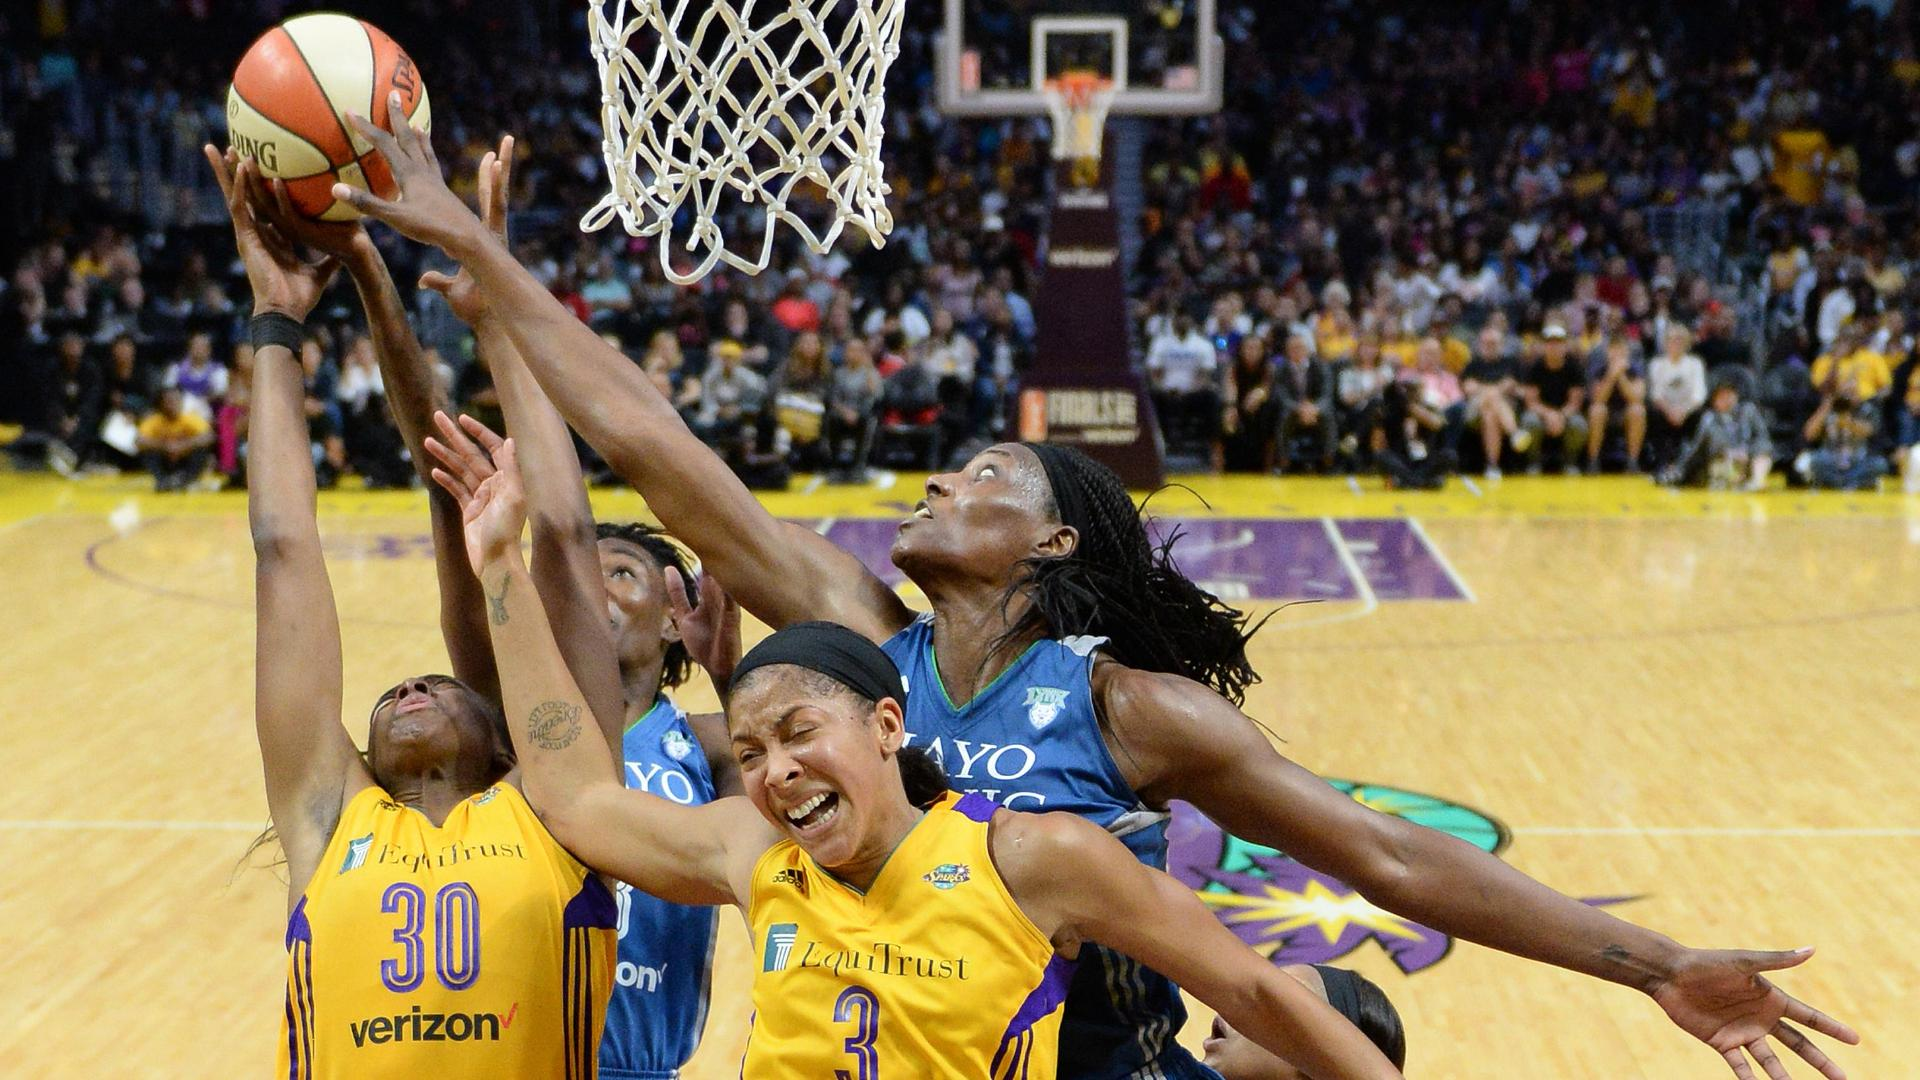 http://a.espncdn.com/media/motion/2017/1004/dm_171004_wnba_sceu_finals_look_back403/dm_171004_wnba_sceu_finals_look_back403.jpg